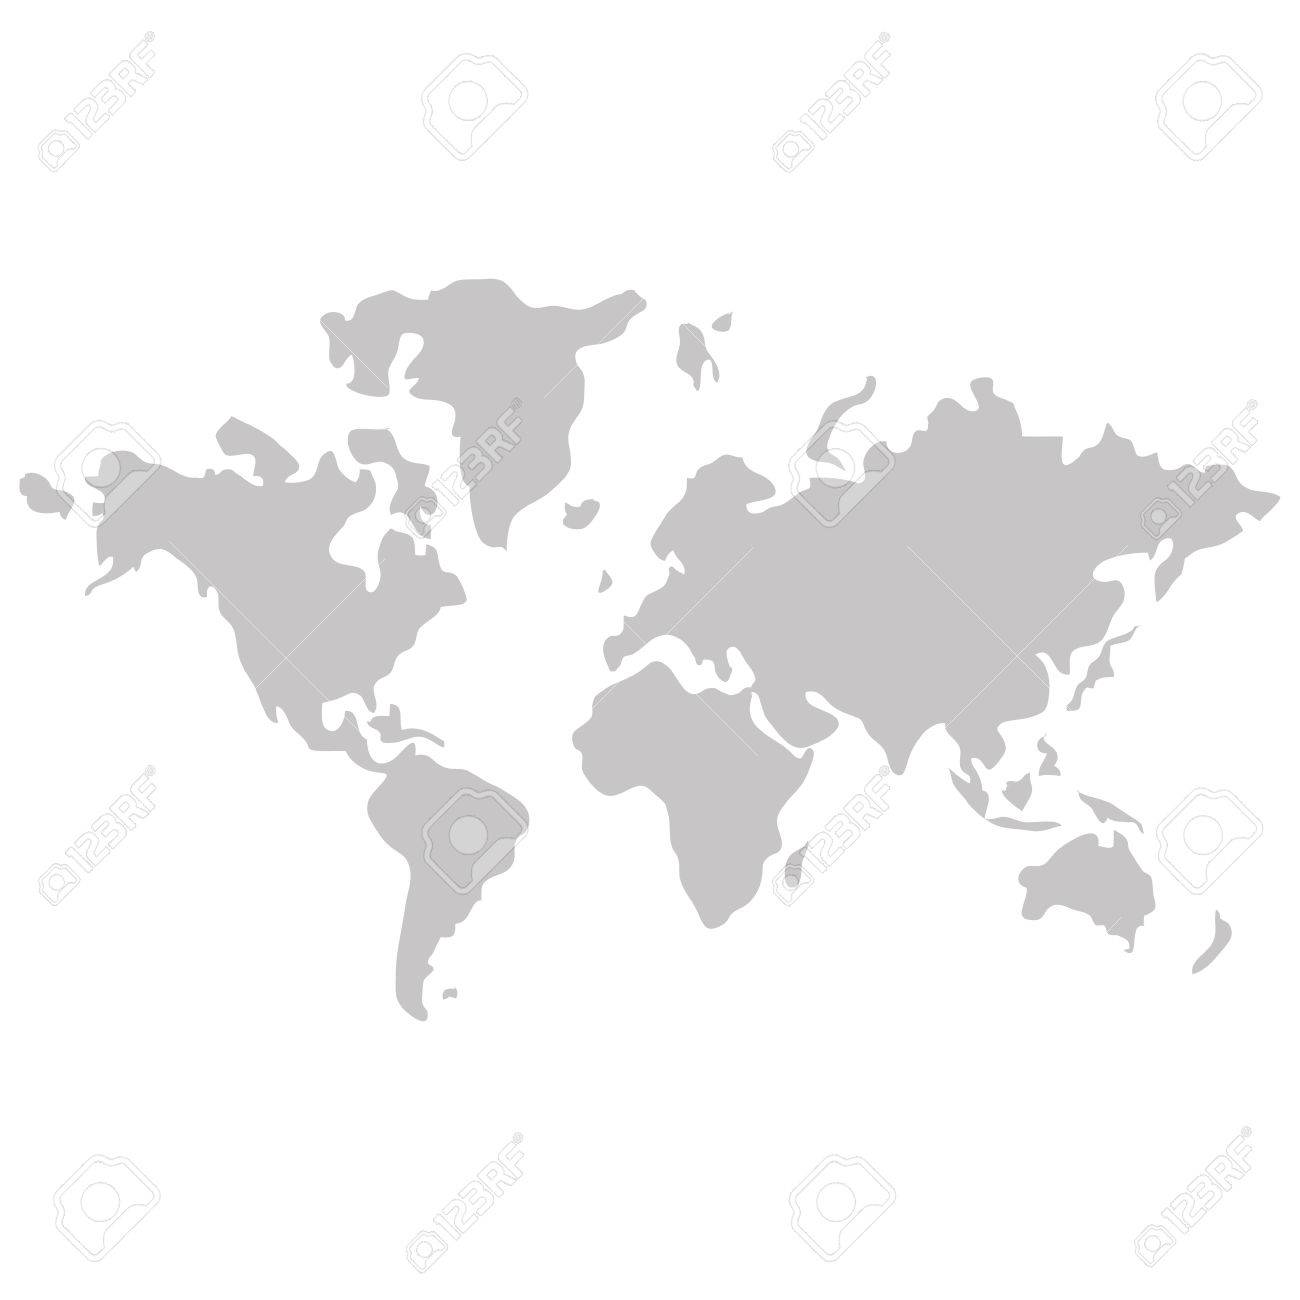 Simple flat design world map with distinction between land and simple flat design world map with distinction between land and sea icon vector illustration stock vector gumiabroncs Gallery